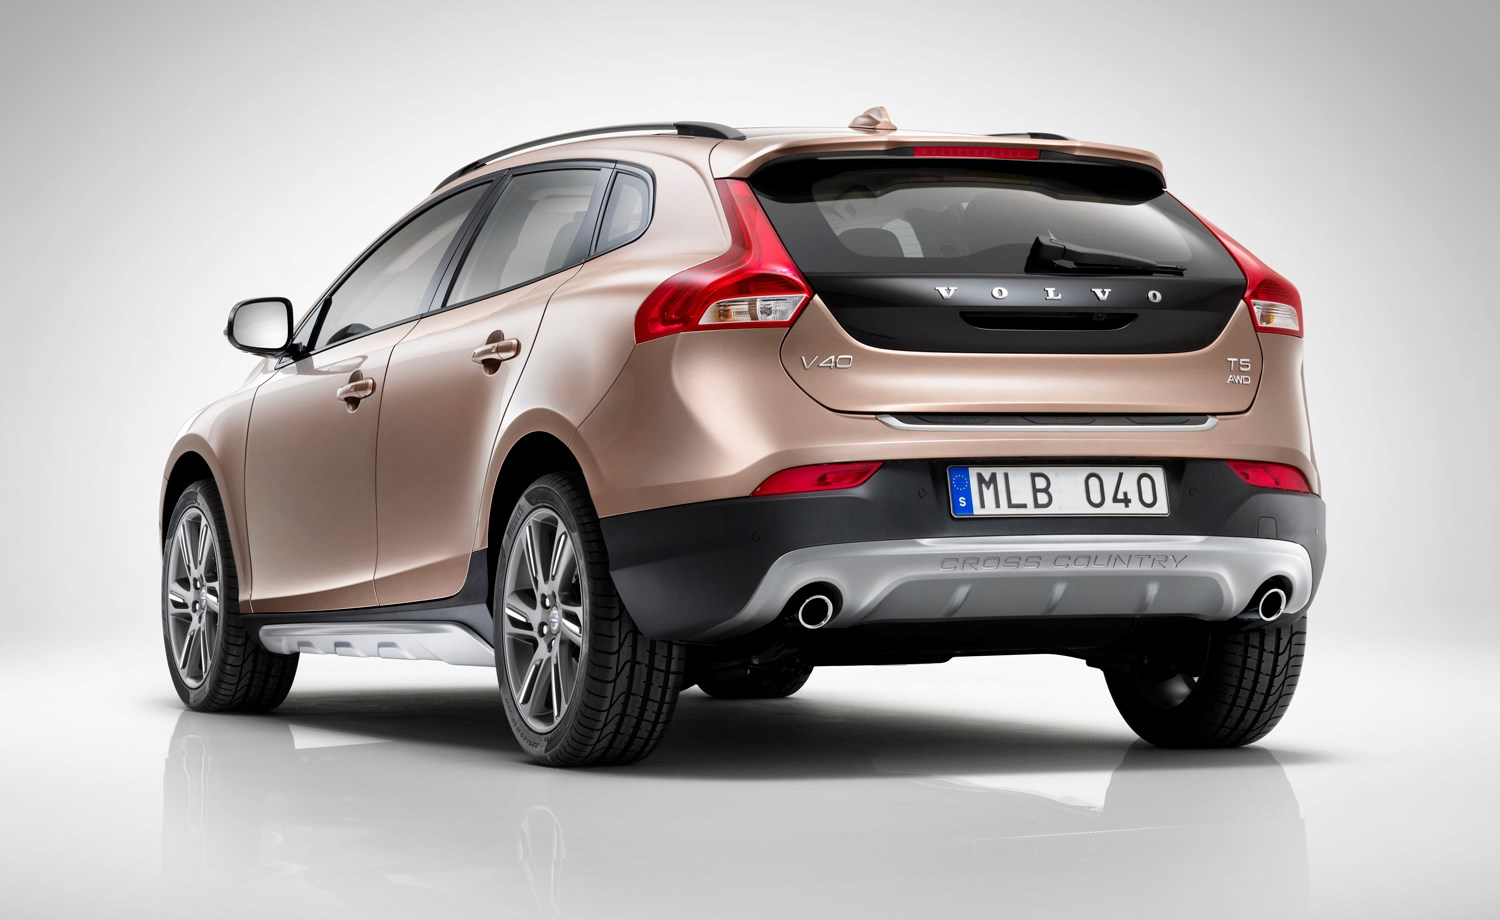 volvo v40 cross country review 2013 parkers. Black Bedroom Furniture Sets. Home Design Ideas